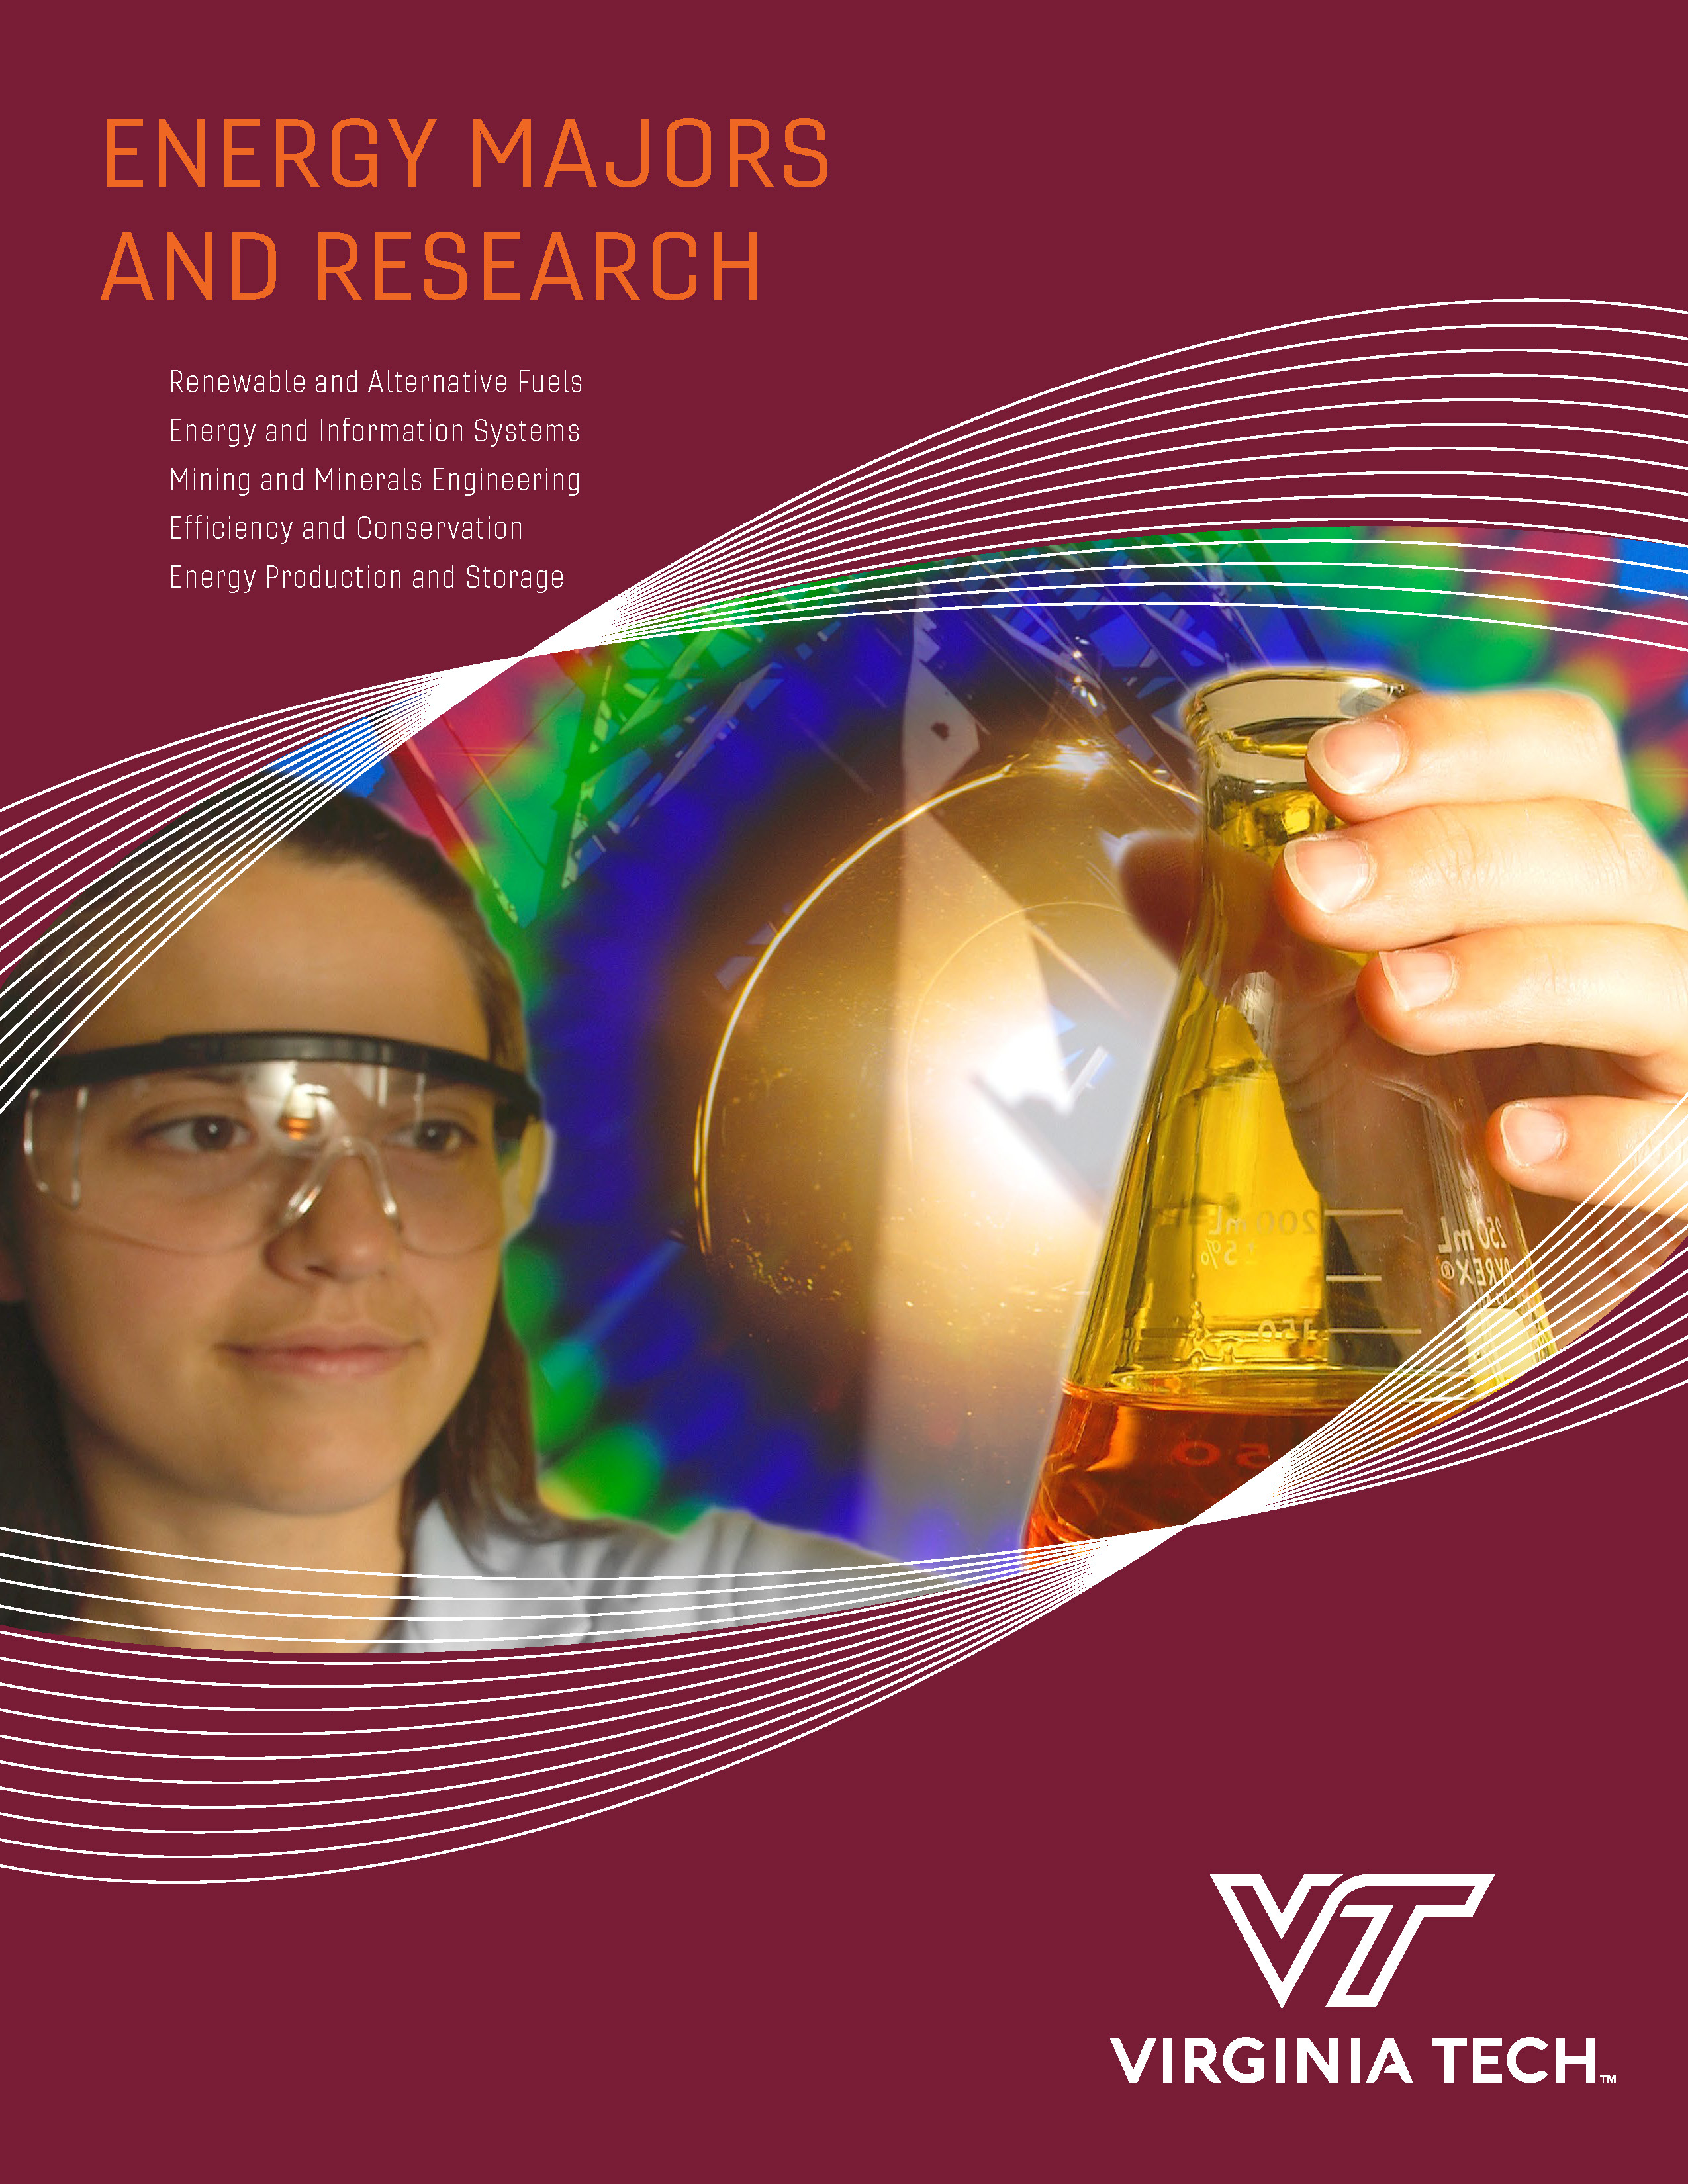 Energy Majors and Research Brochure